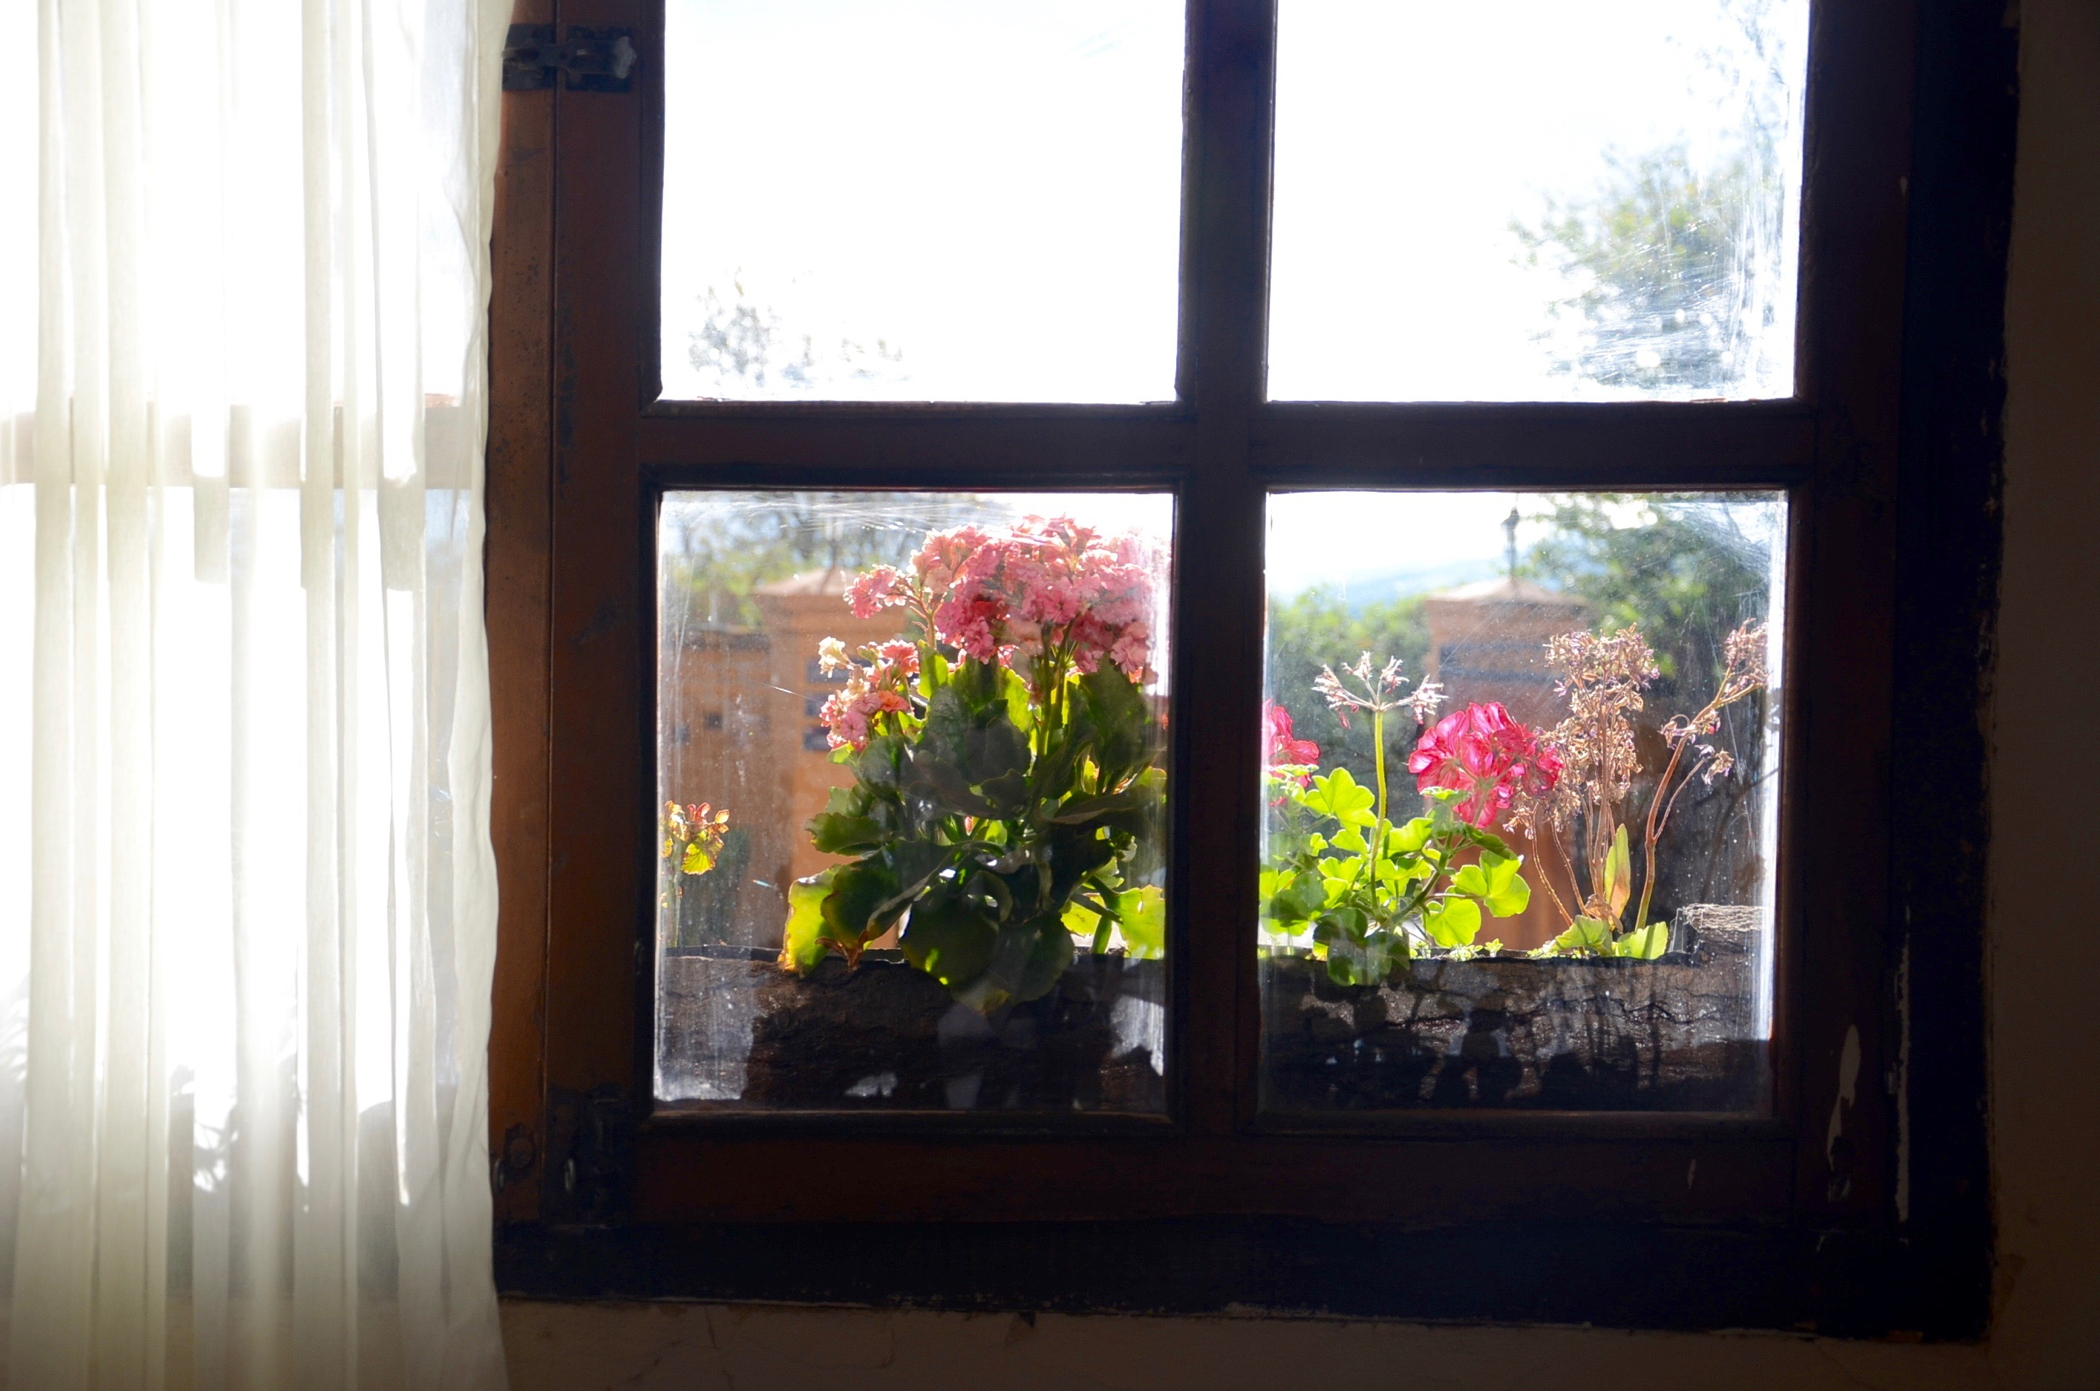 Hosteria_Papagayo_Hotel_Cotopaxi_Ecuador_Window